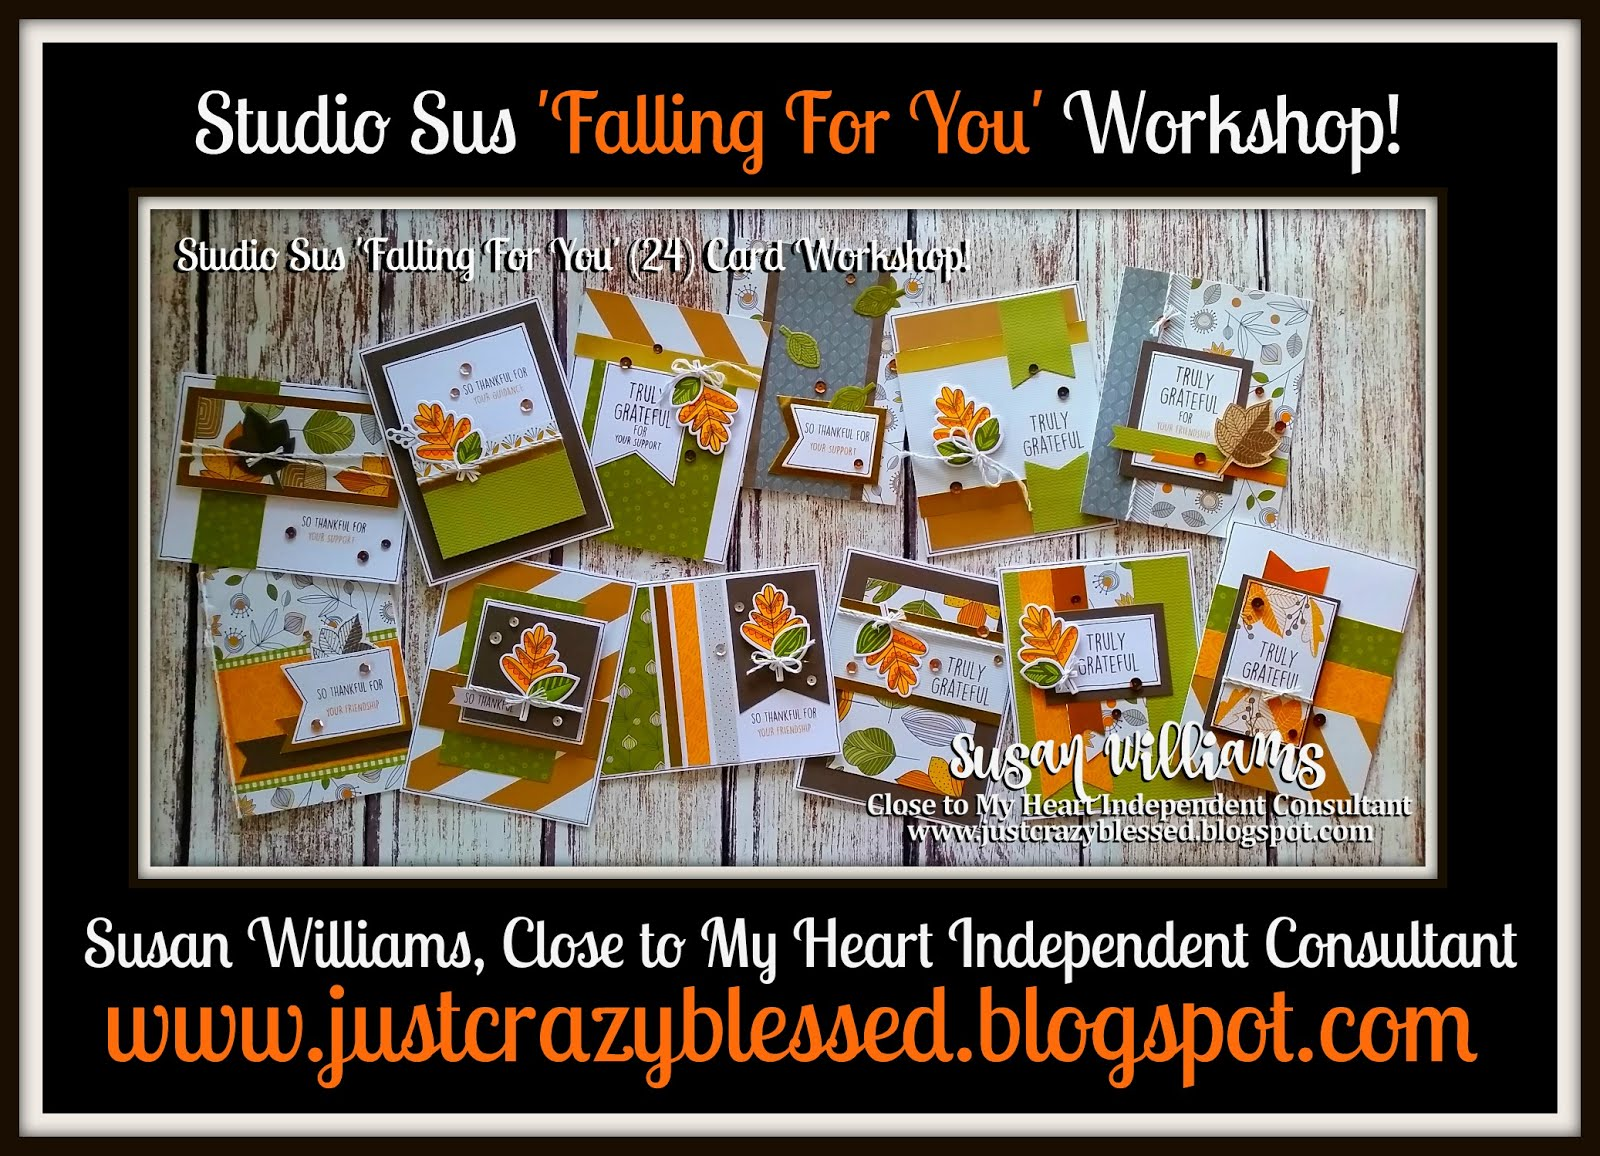 'Falling For You' Cardmaking Workshop!